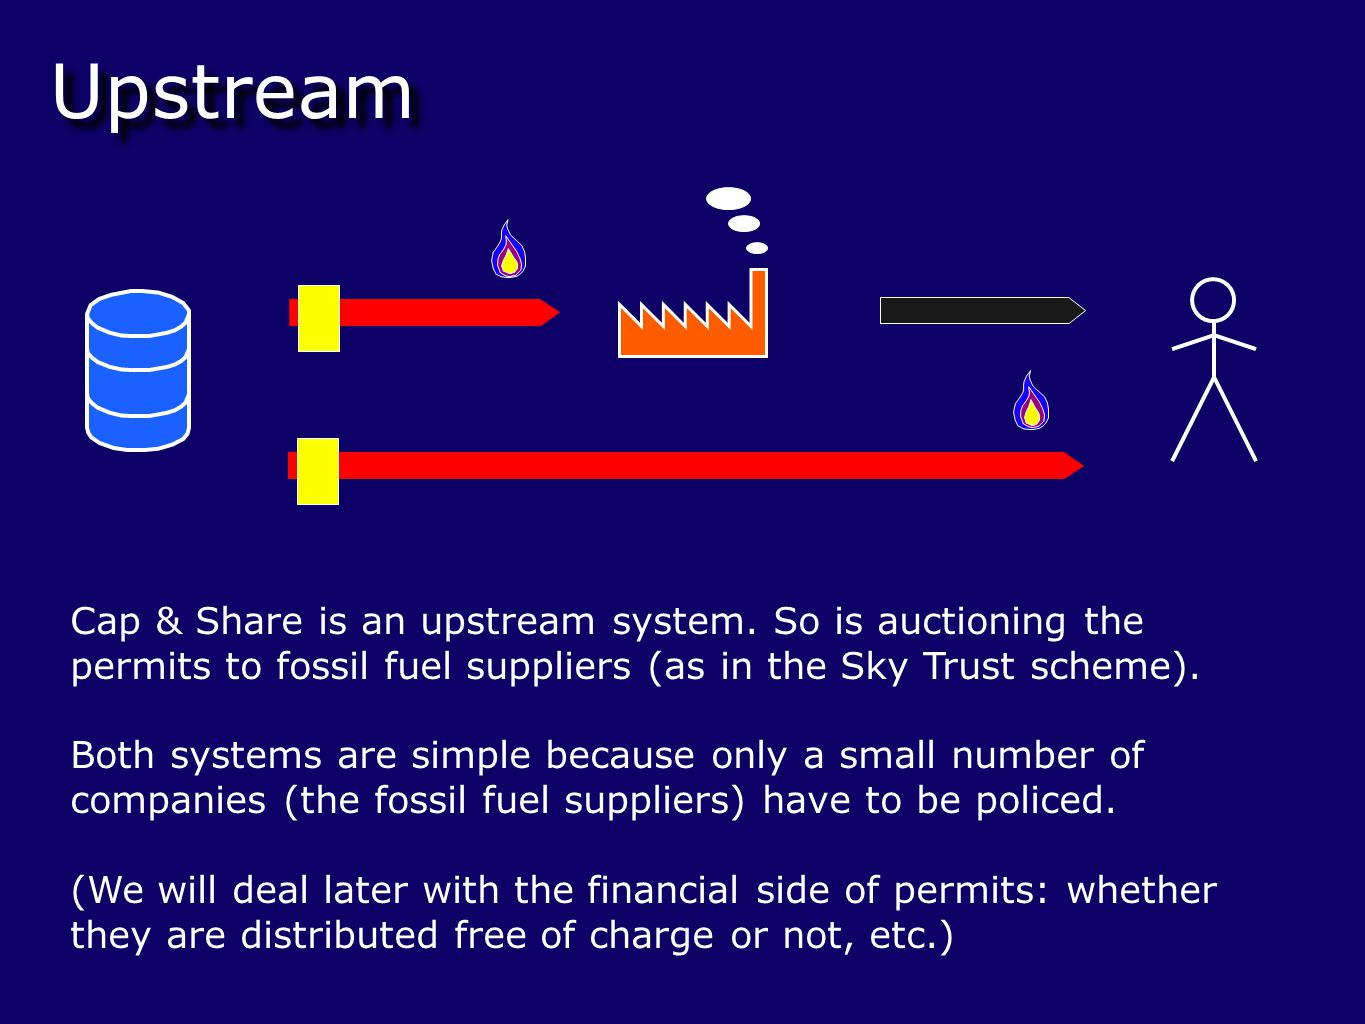 Electricity - ETS / upstream hybrid In ETS Not in ETS Again this gives complete coverage, but only a small number of companies (the fossil fuel suppliers, the electricity generators and the ETS companies) are involved.